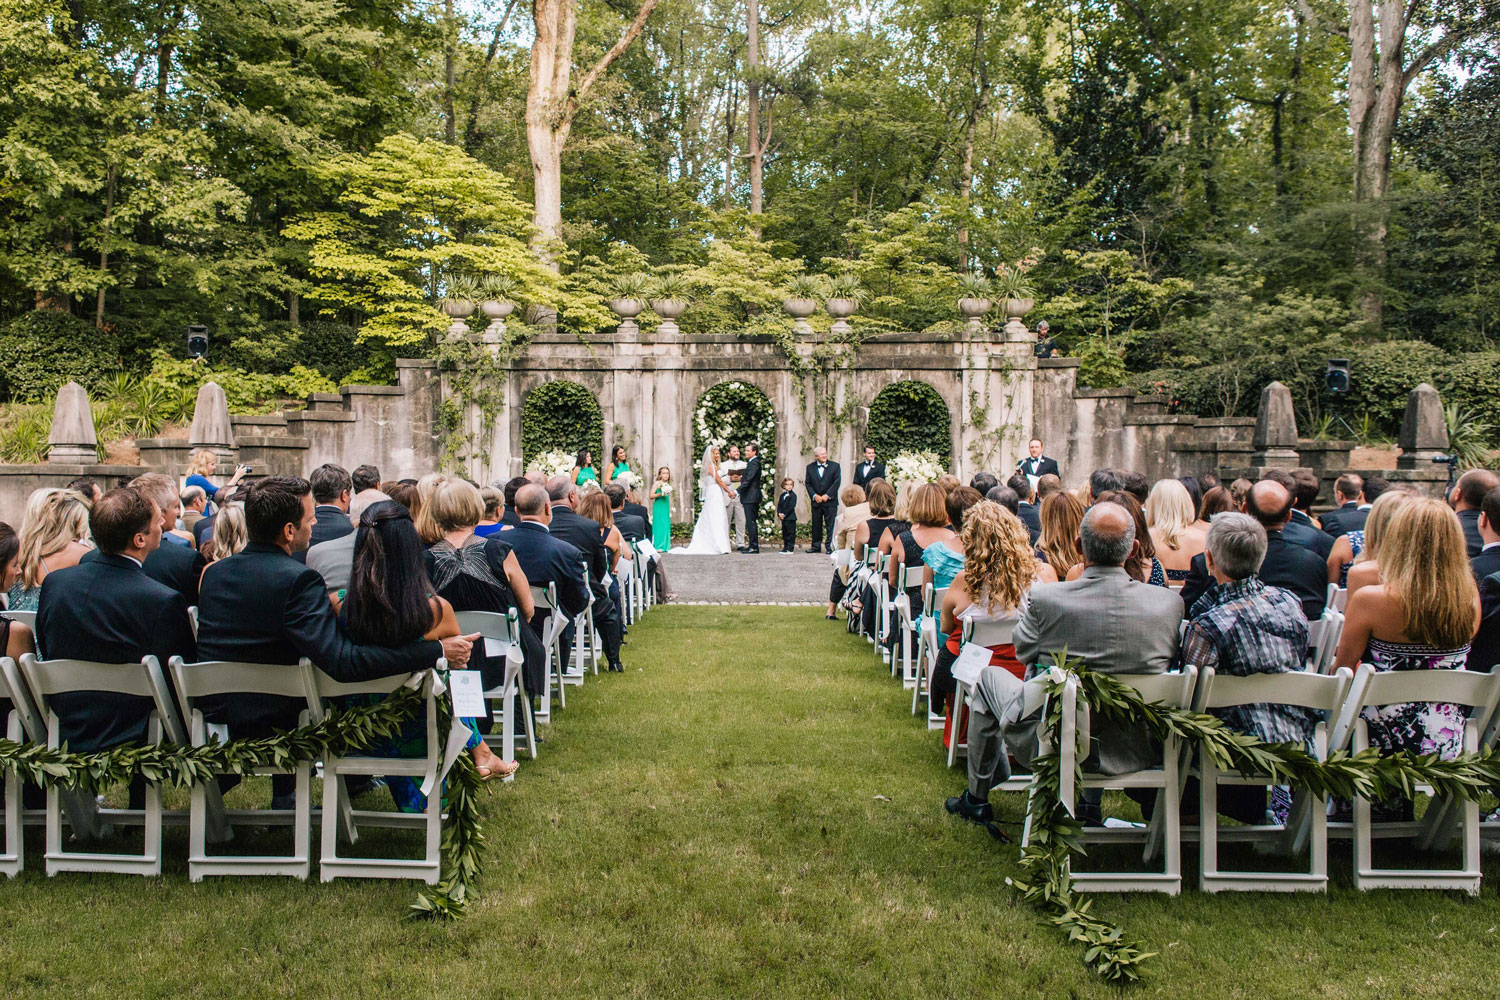 Wedding ceremony outdoor at estate stone grass lawn mansion in atlanta georgia